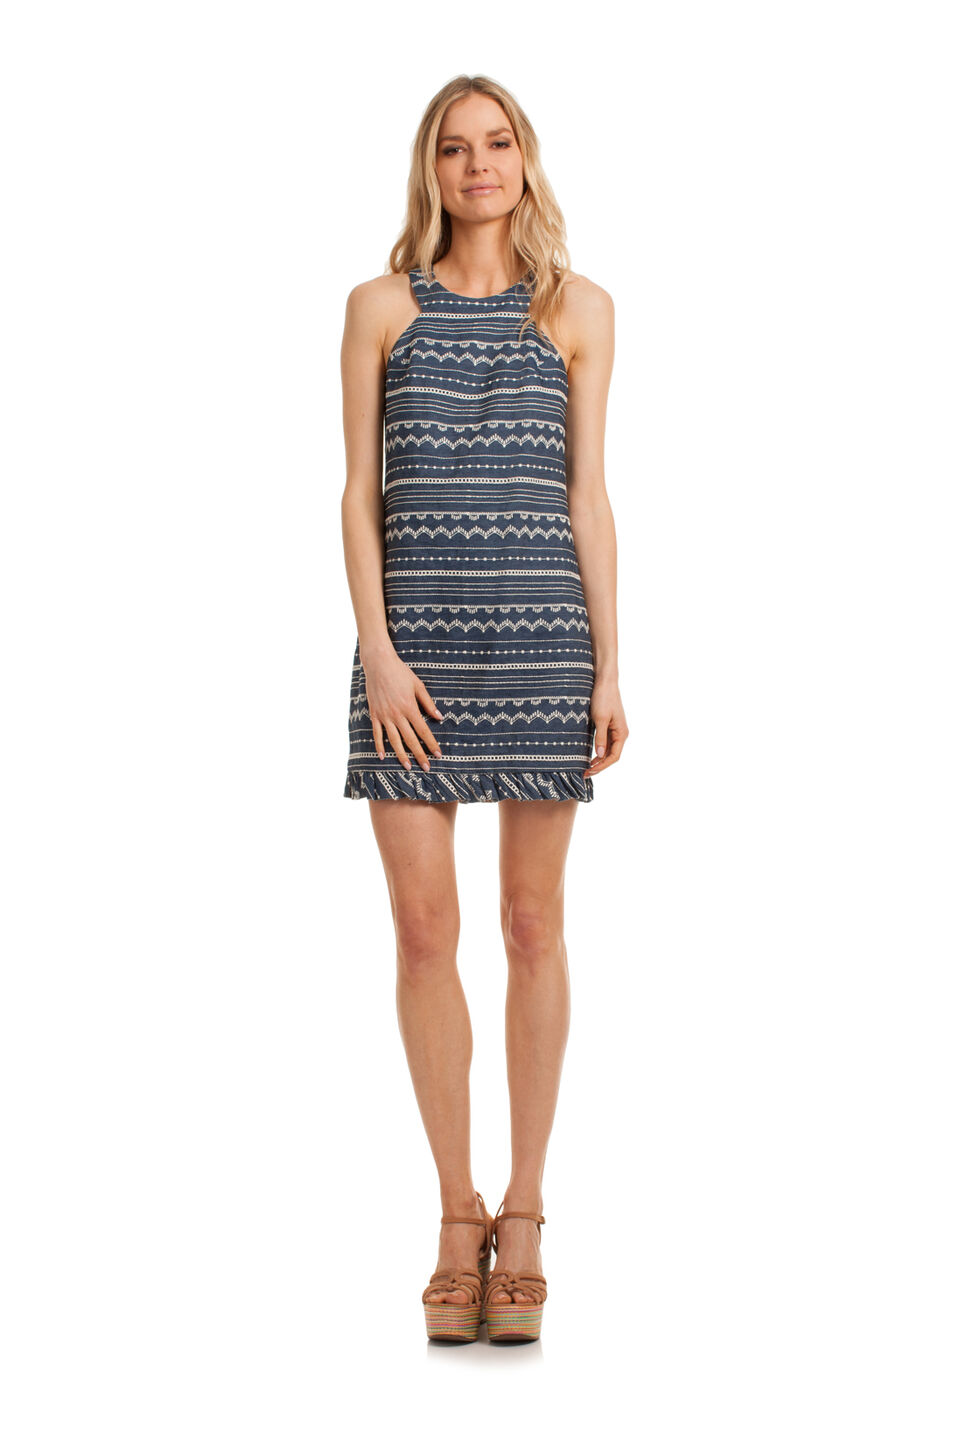 Trina Turk Springs Dress - Blue - Size Fit Guide